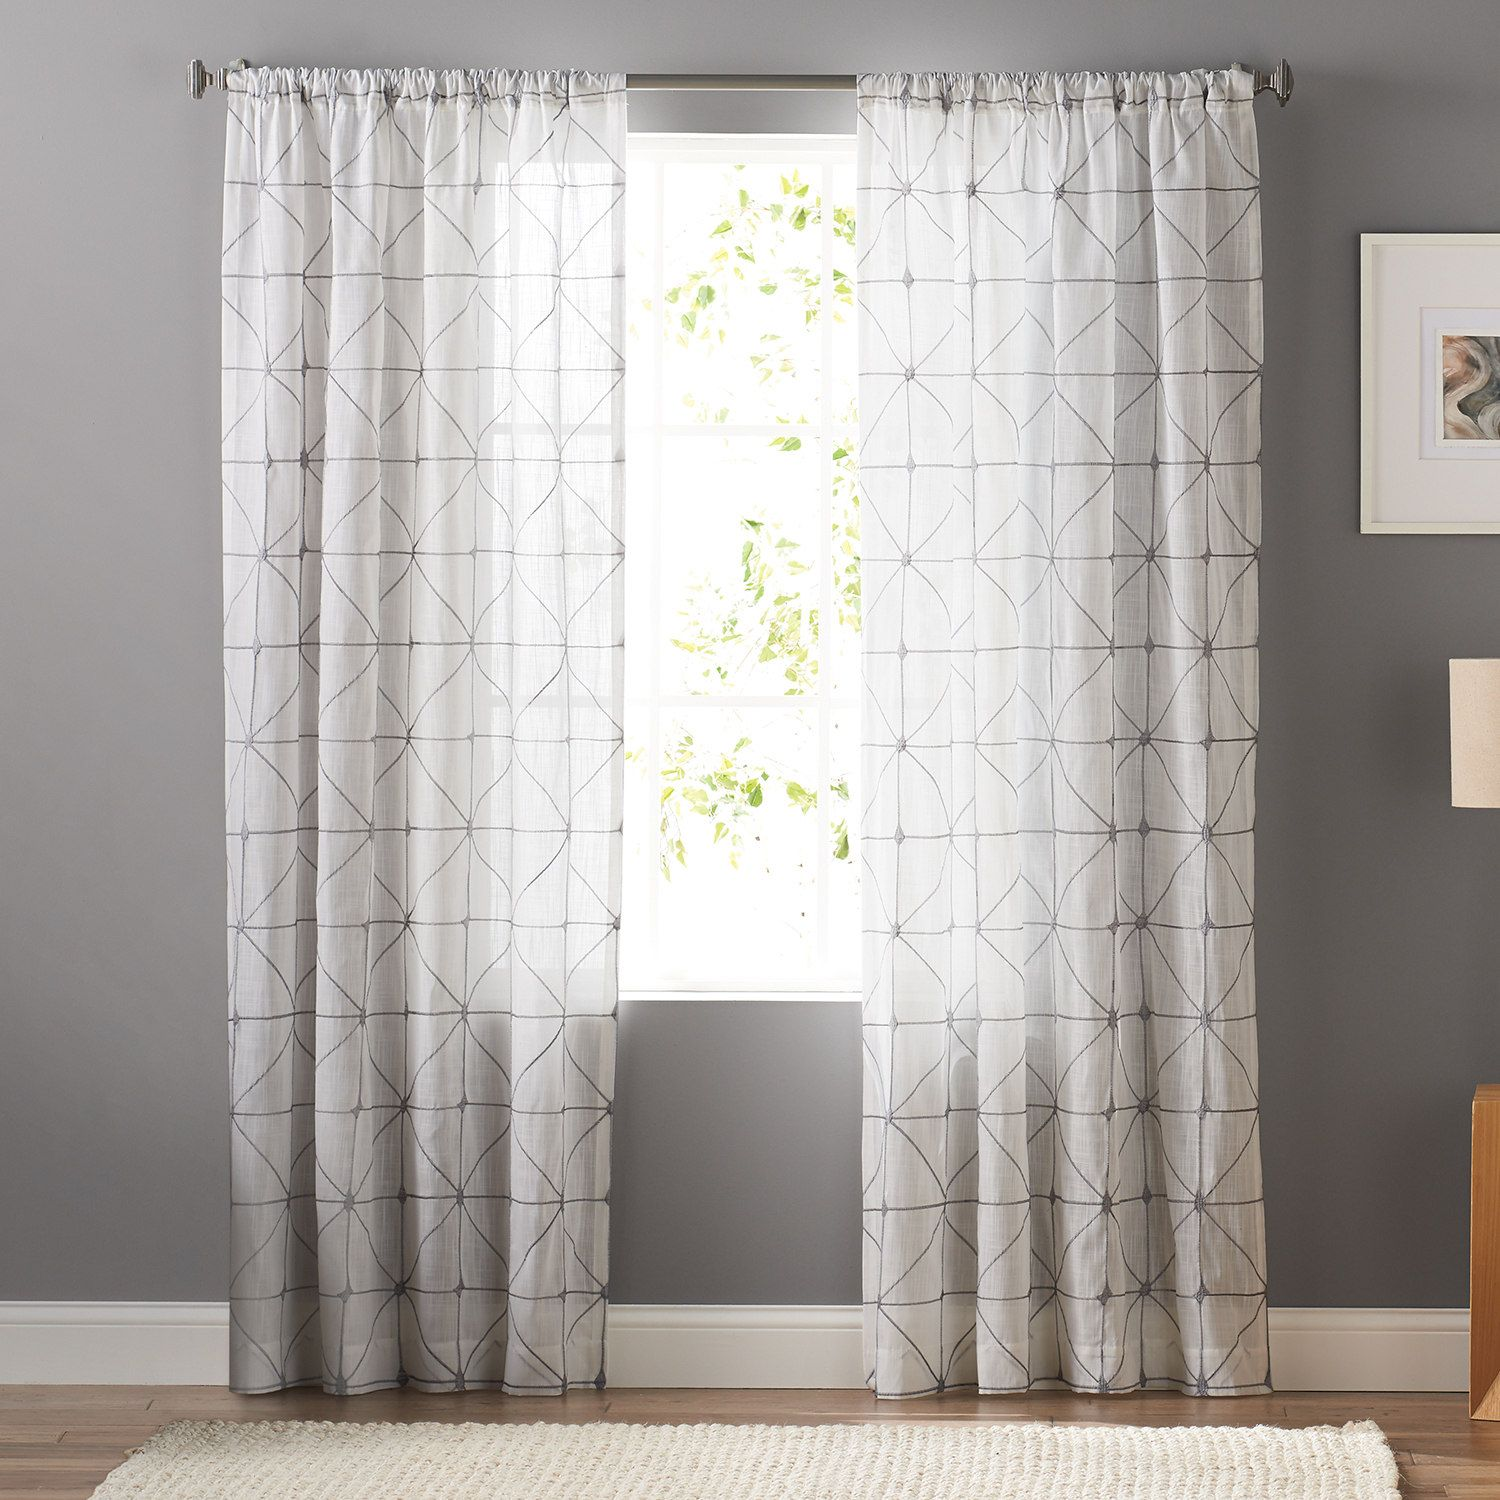 picture sheer kitchen ideas kohlssheer greybedroom valances of curtains tremendous curtain size full swagskohls and kohls